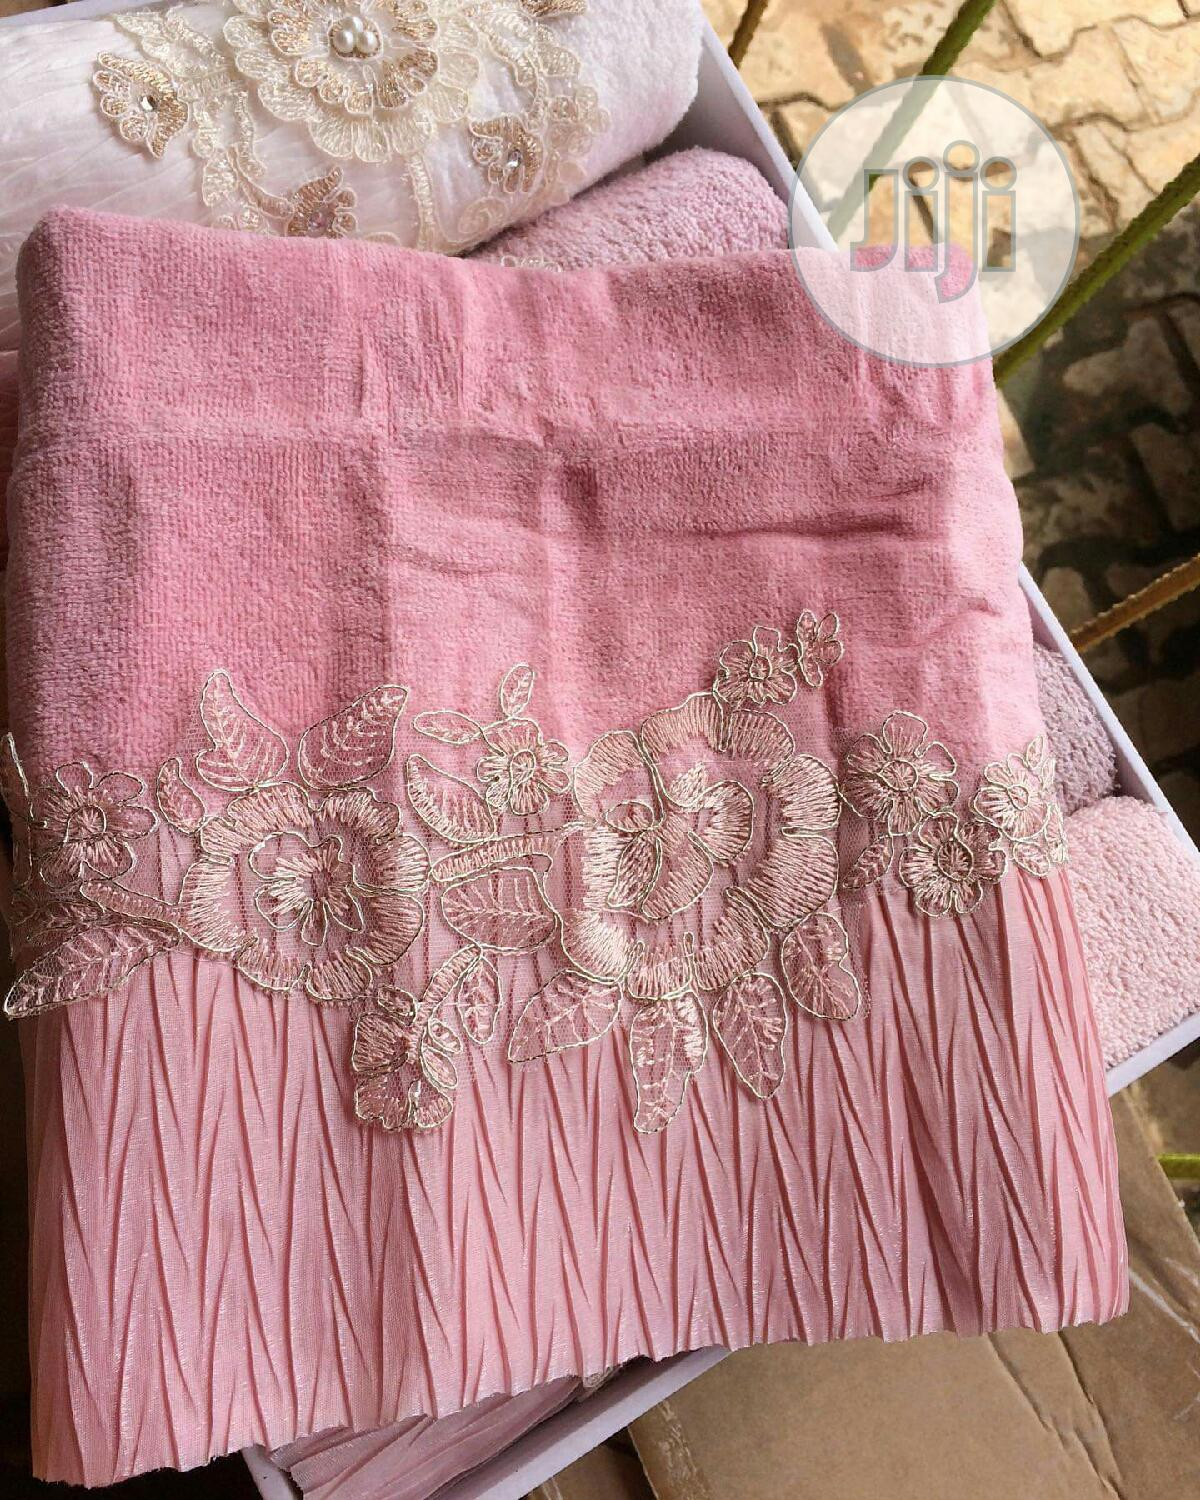 Luxury Baby's Towels | Baby & Child Care for sale in Lagos Island, Lagos State, Nigeria